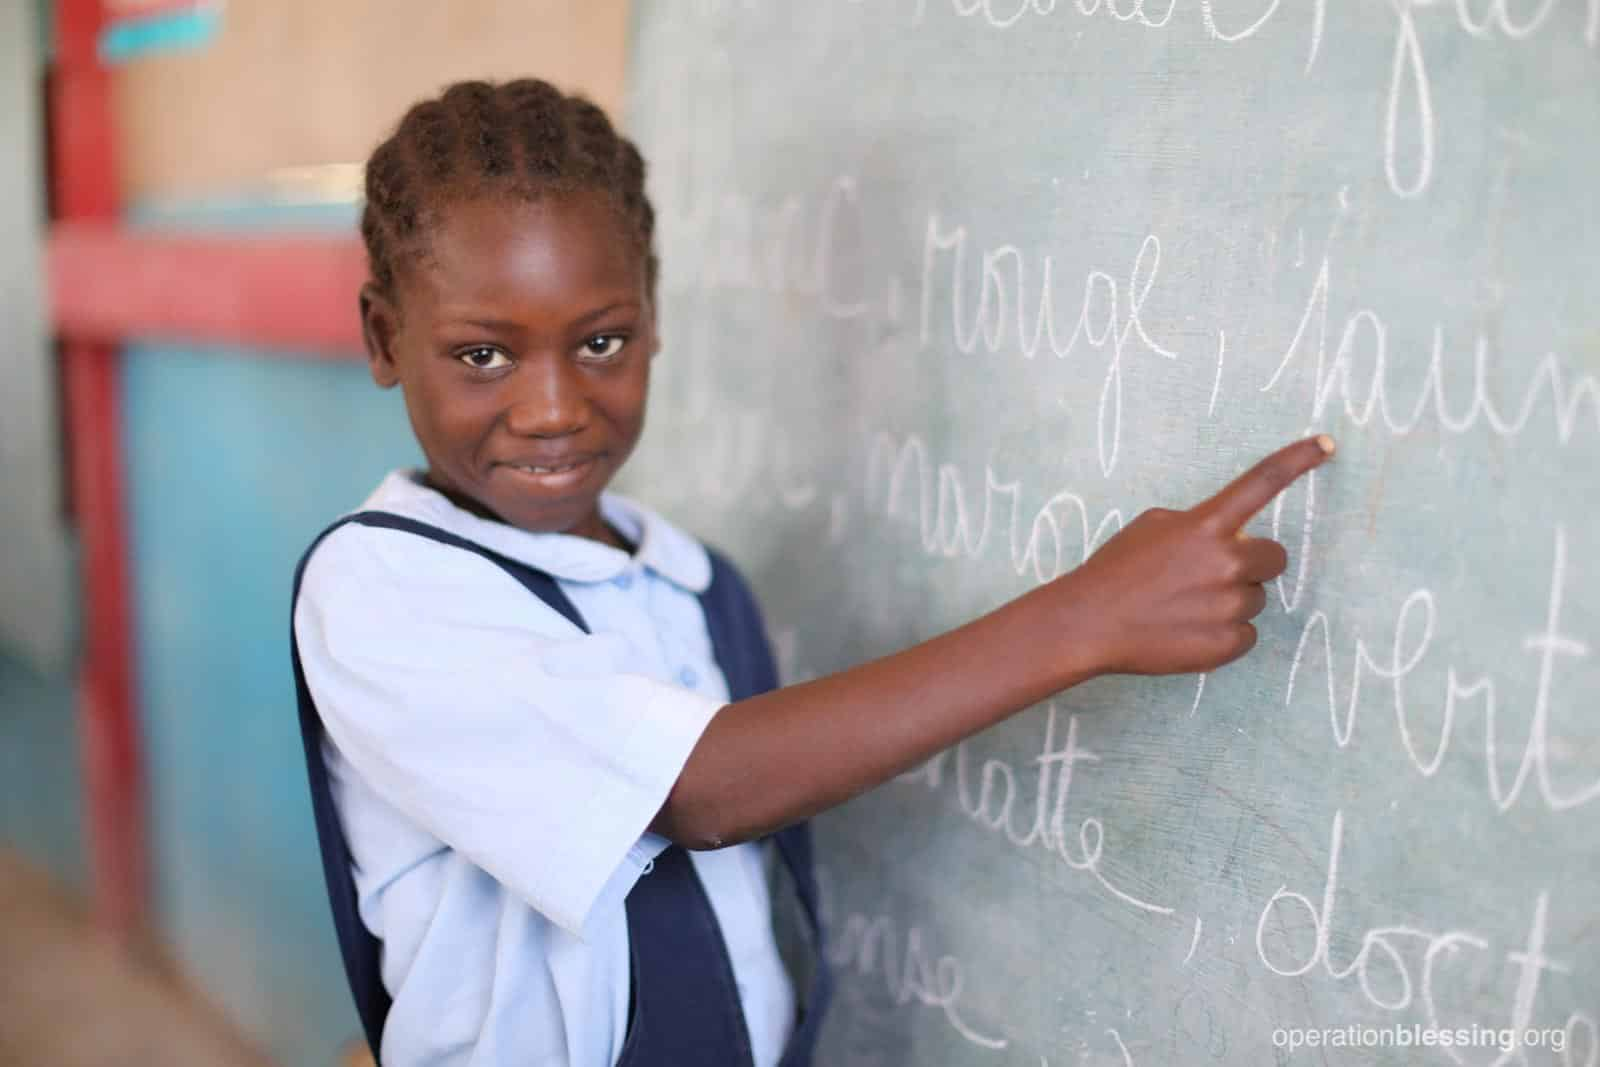 Daphkaline points at the chalkboard. This promising student received a scholarship to continue her education.